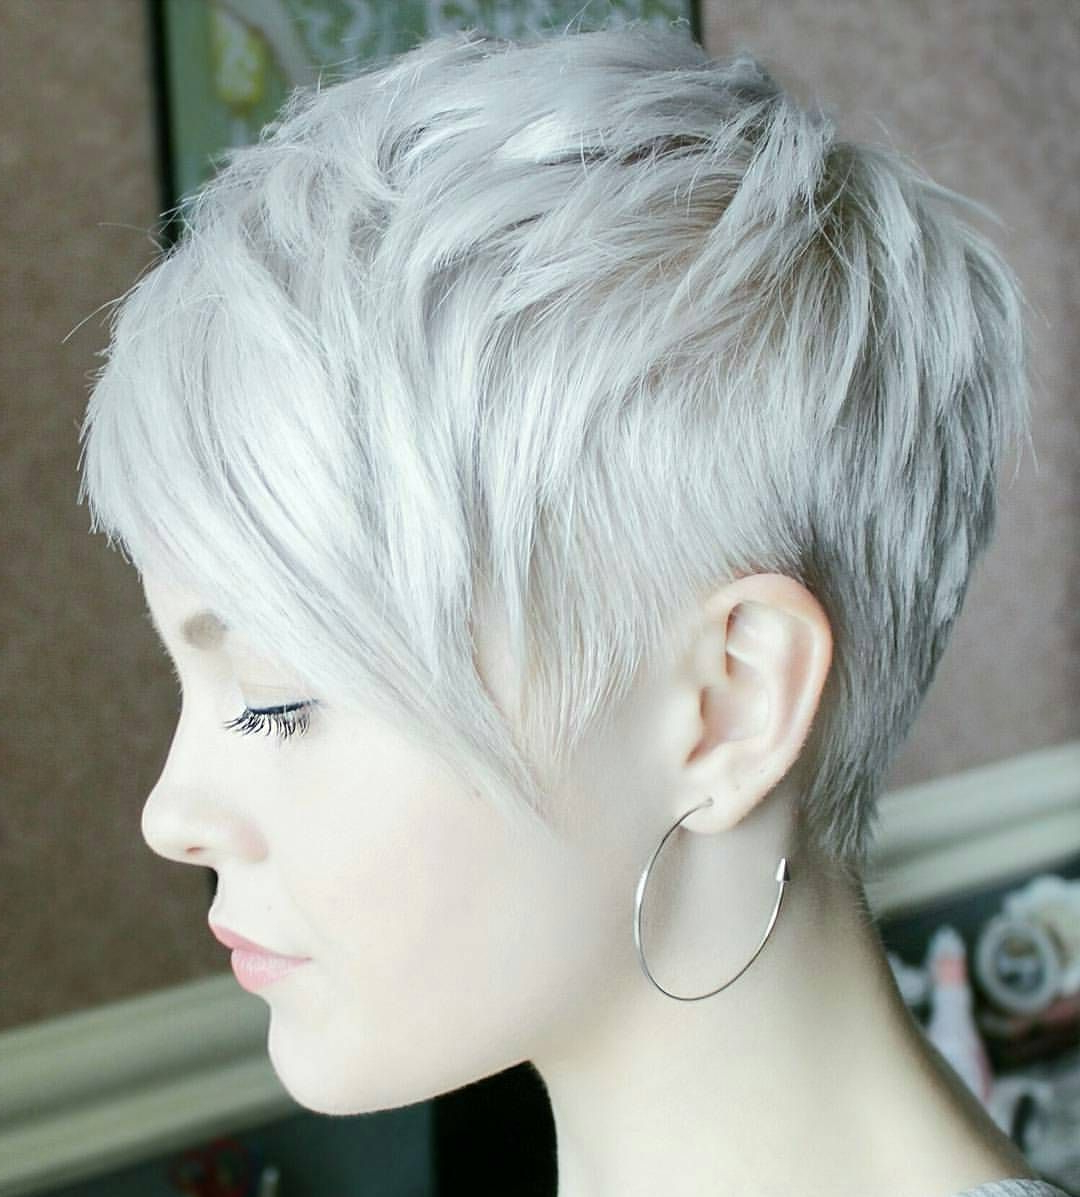 50 Trendsetting Short And Long Pixie Haircut Styles — Cutest Of Them With Messy Pixie Haircuts With V Cut Layers (View 9 of 20)